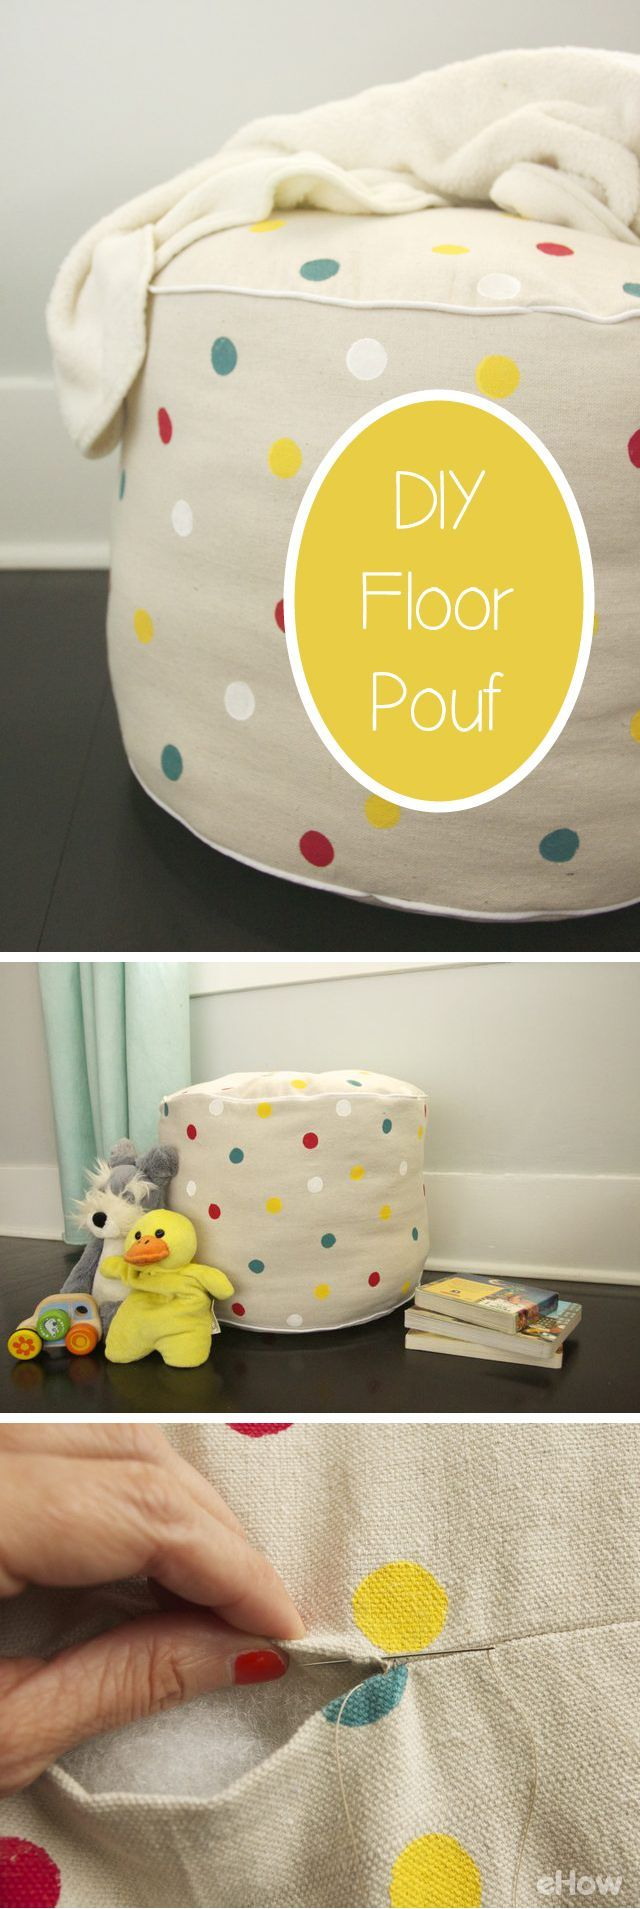 best baby room images on pinterest bedroom ideas pillows and